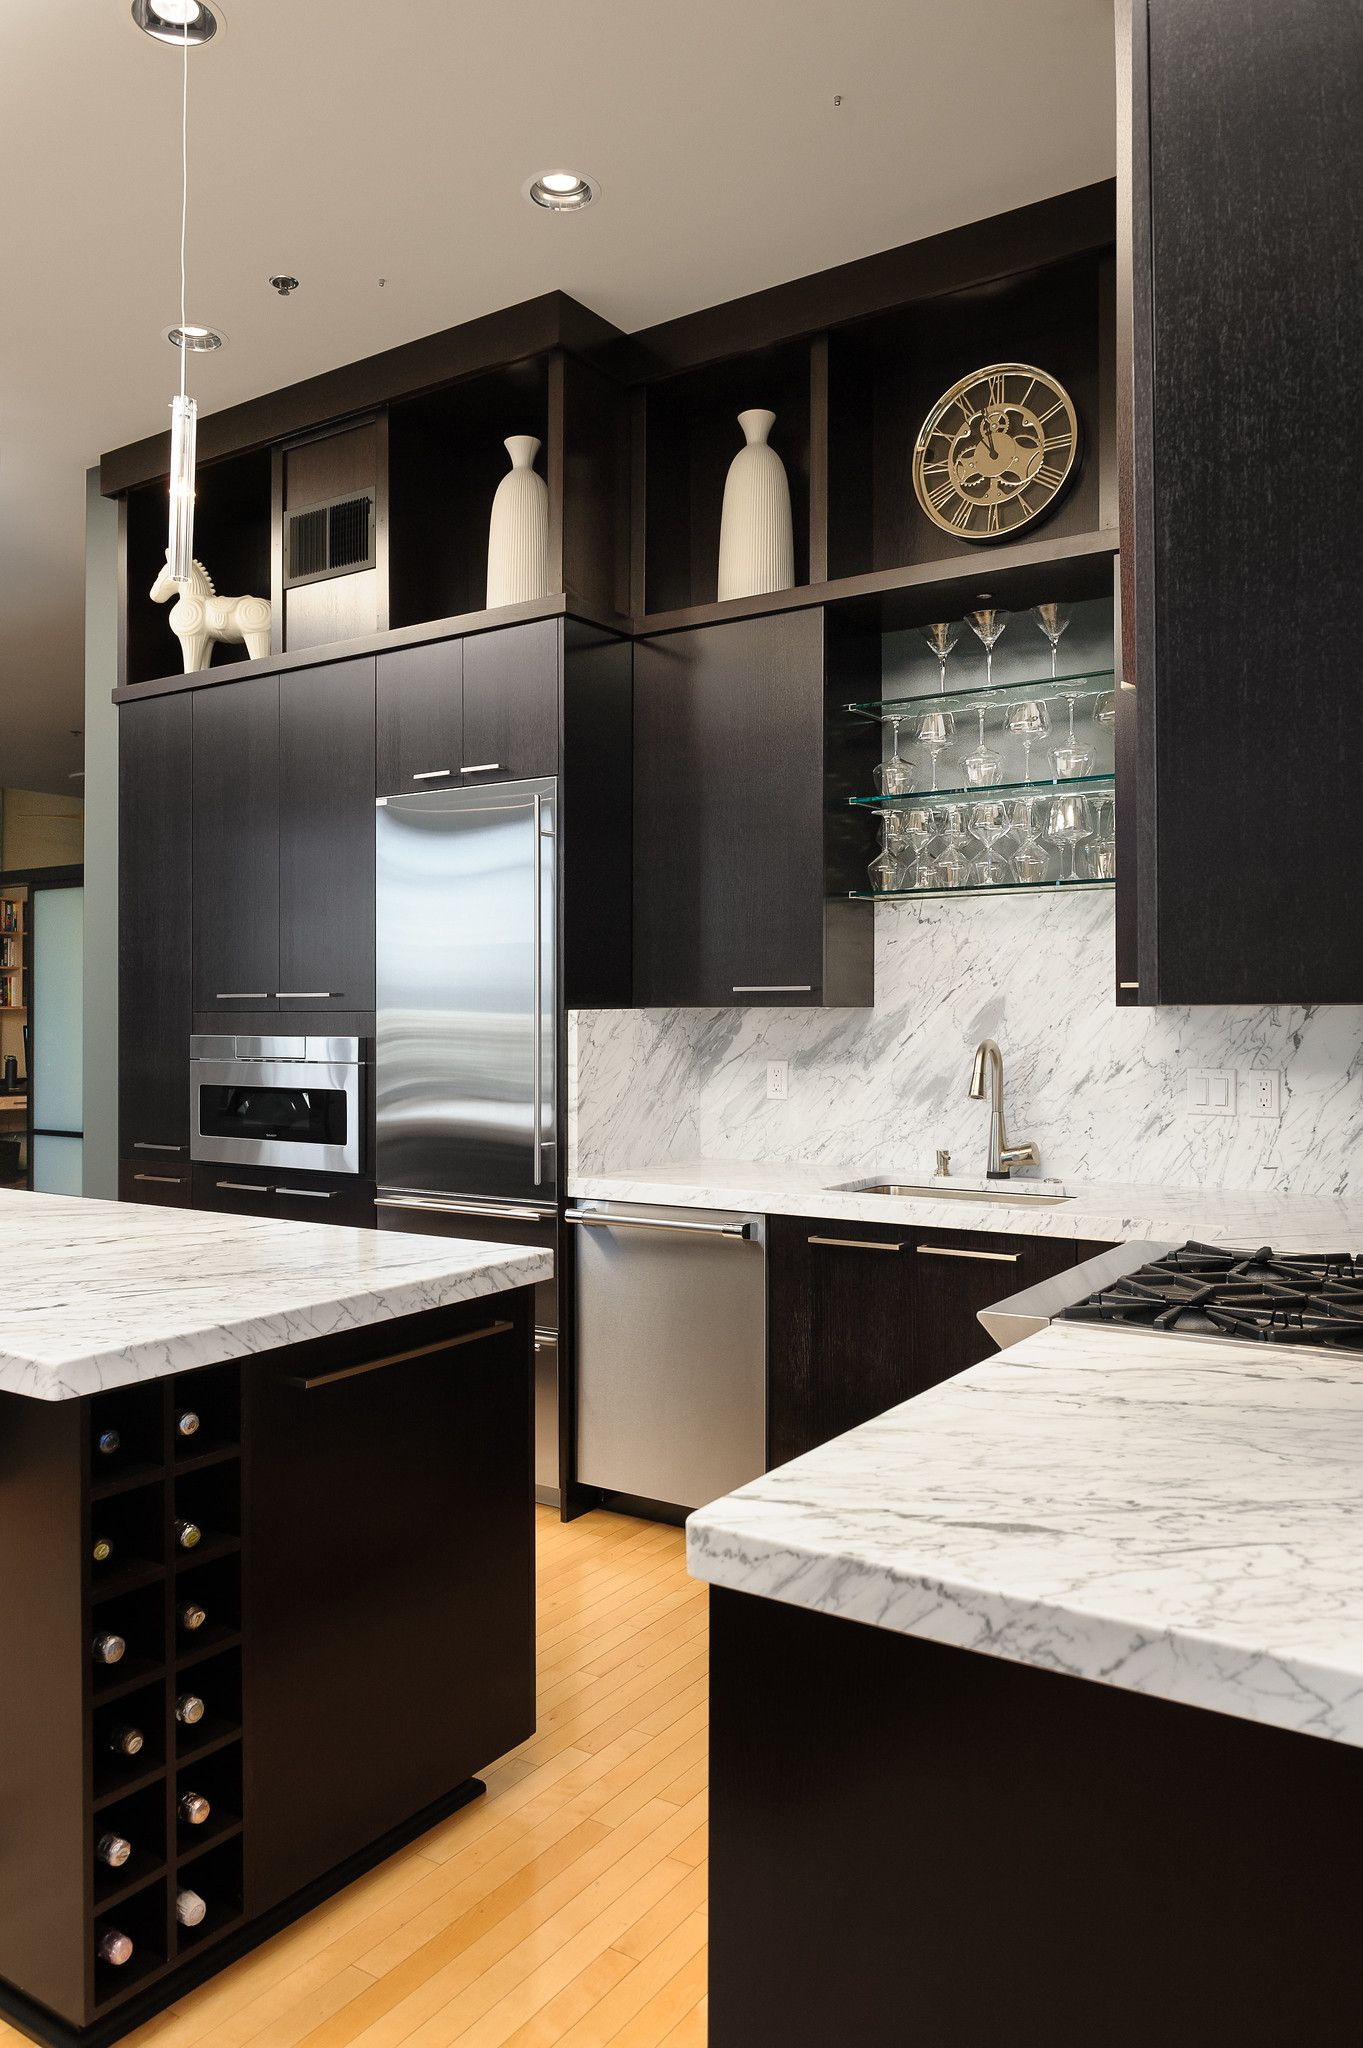 Modern Contemporary Condo Kitchen Remodel In Portland Oregon In 2020 Condo Kitchen Remodel Kitchen Remodel Built In Wine Rack